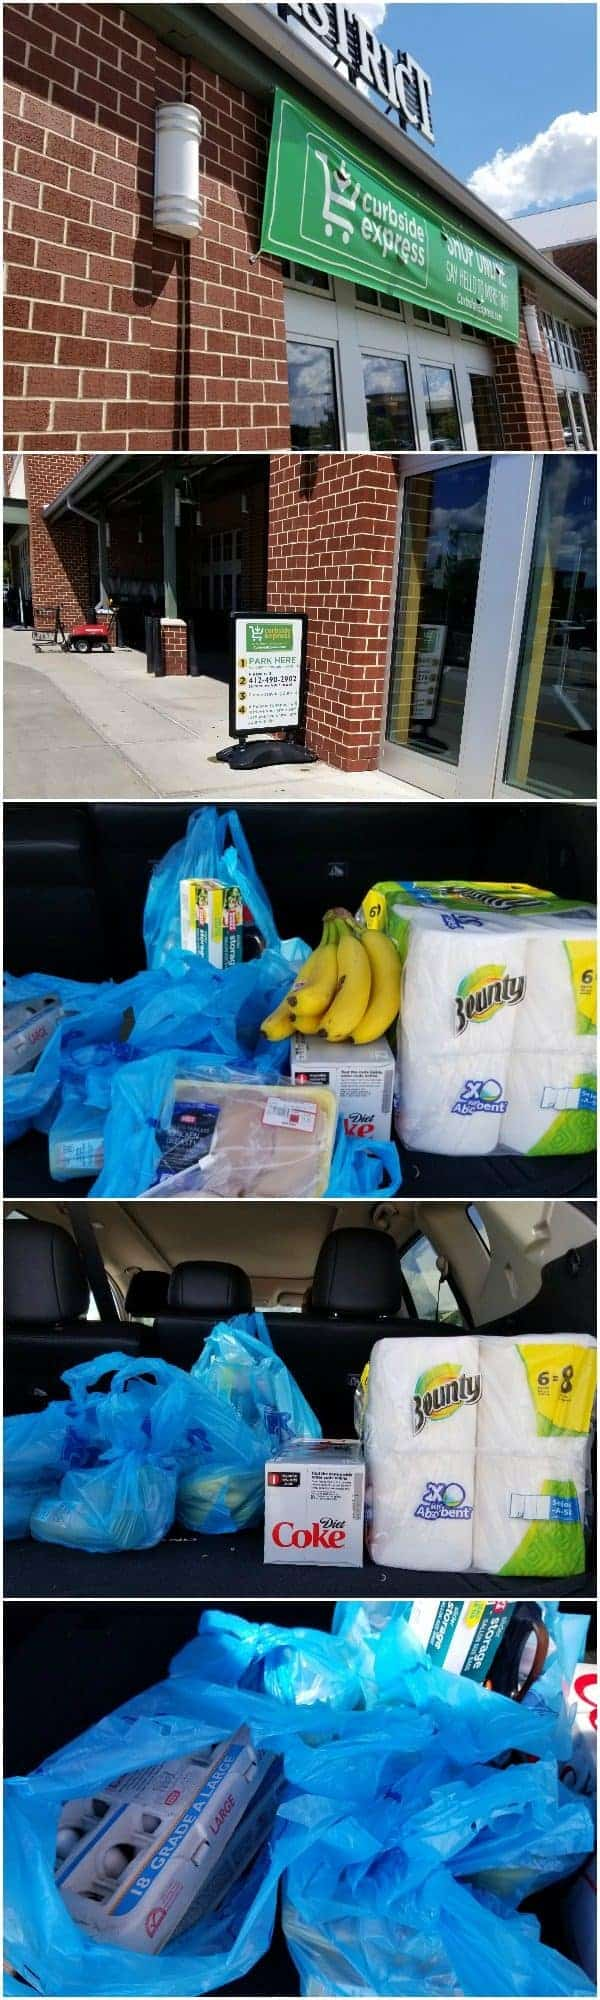 Curbside Express - stop and get your groceries!